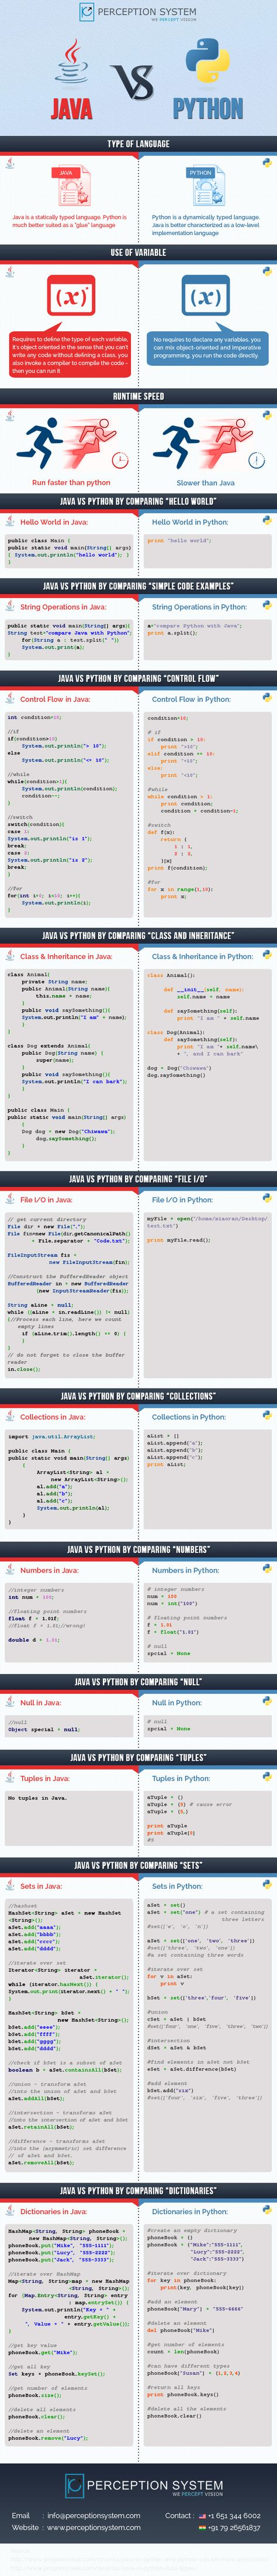 Java vs Python - Which Programming Language Beginners should Learn First?